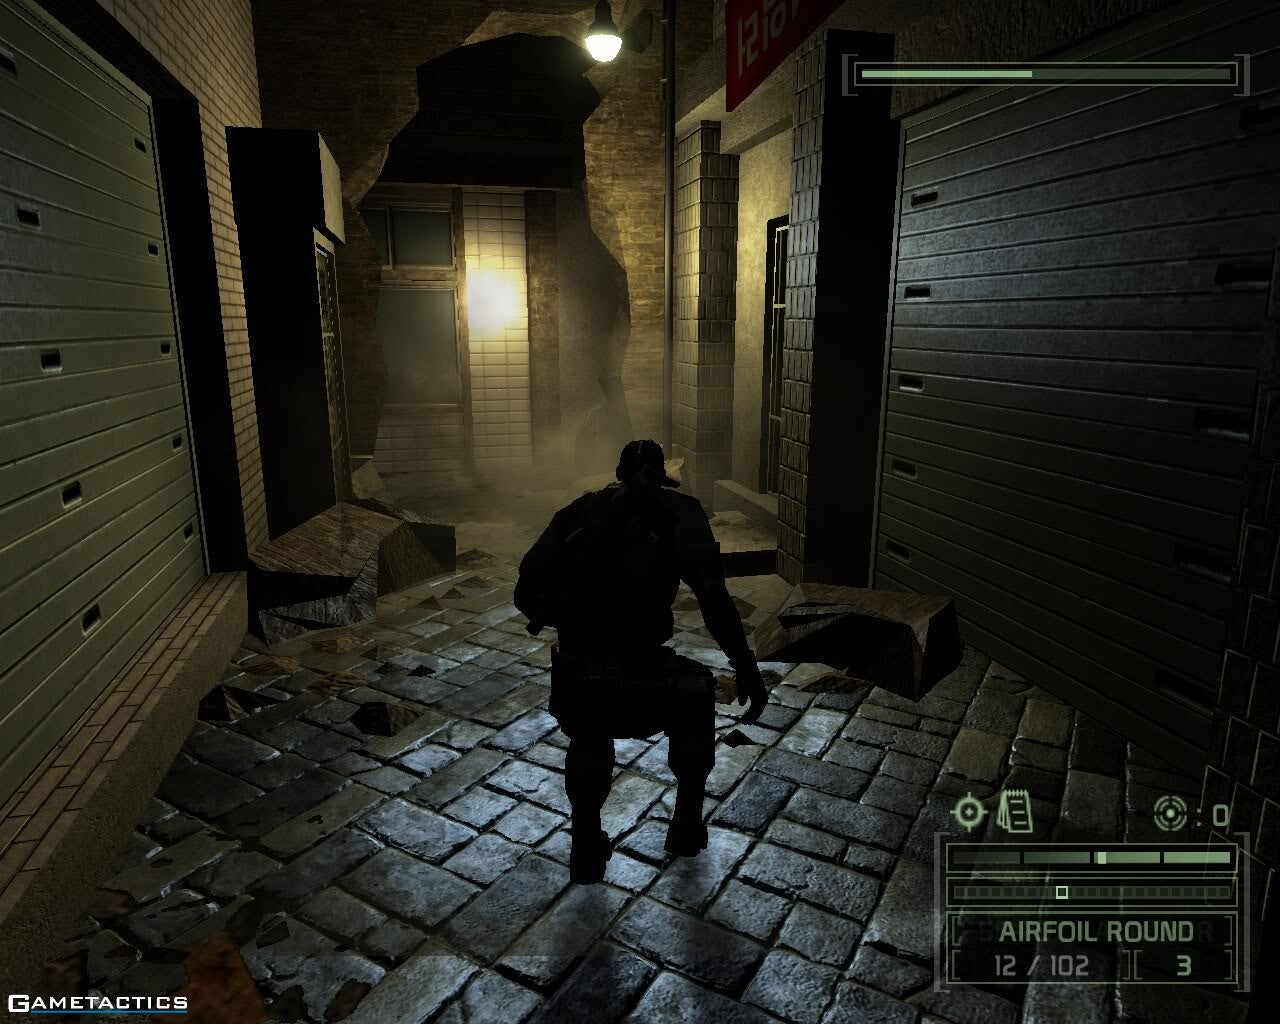 splinter-cell-chaos-theory-screenshot-03.jpg?v=1502361992